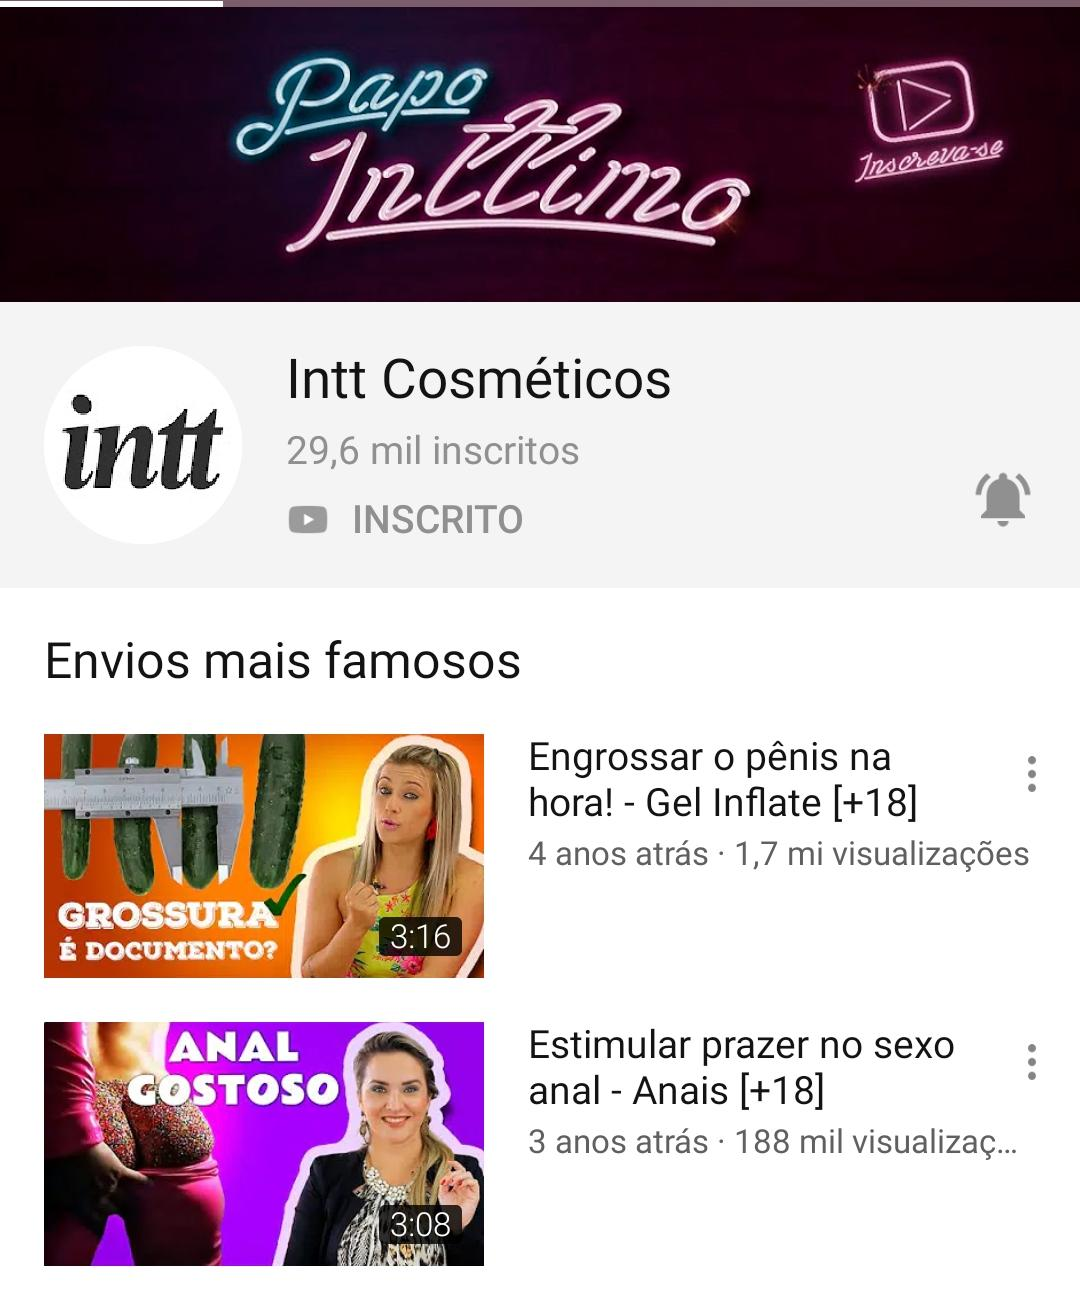 Canal Papo Intimo<br>Intt Cosmeticos